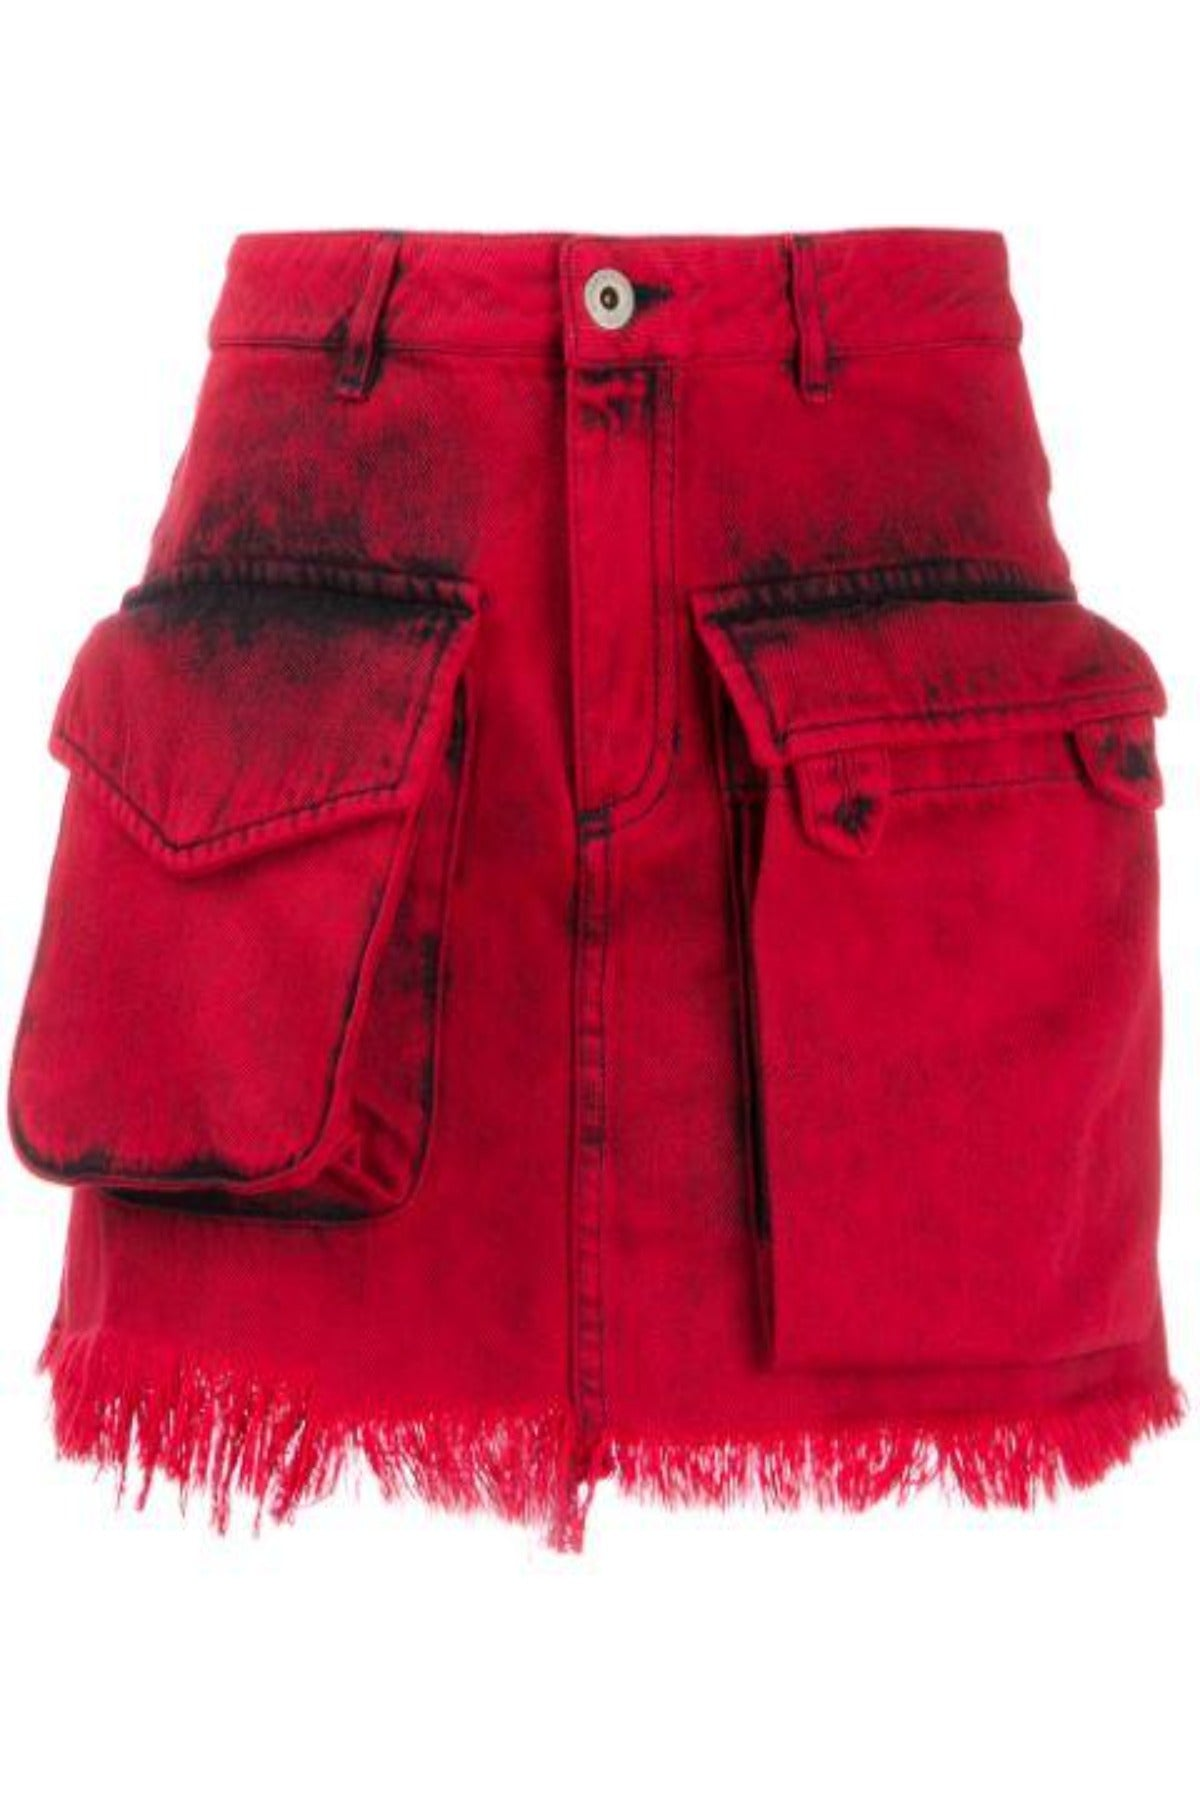 PATCH POCKET MINI SKIRT IN RED